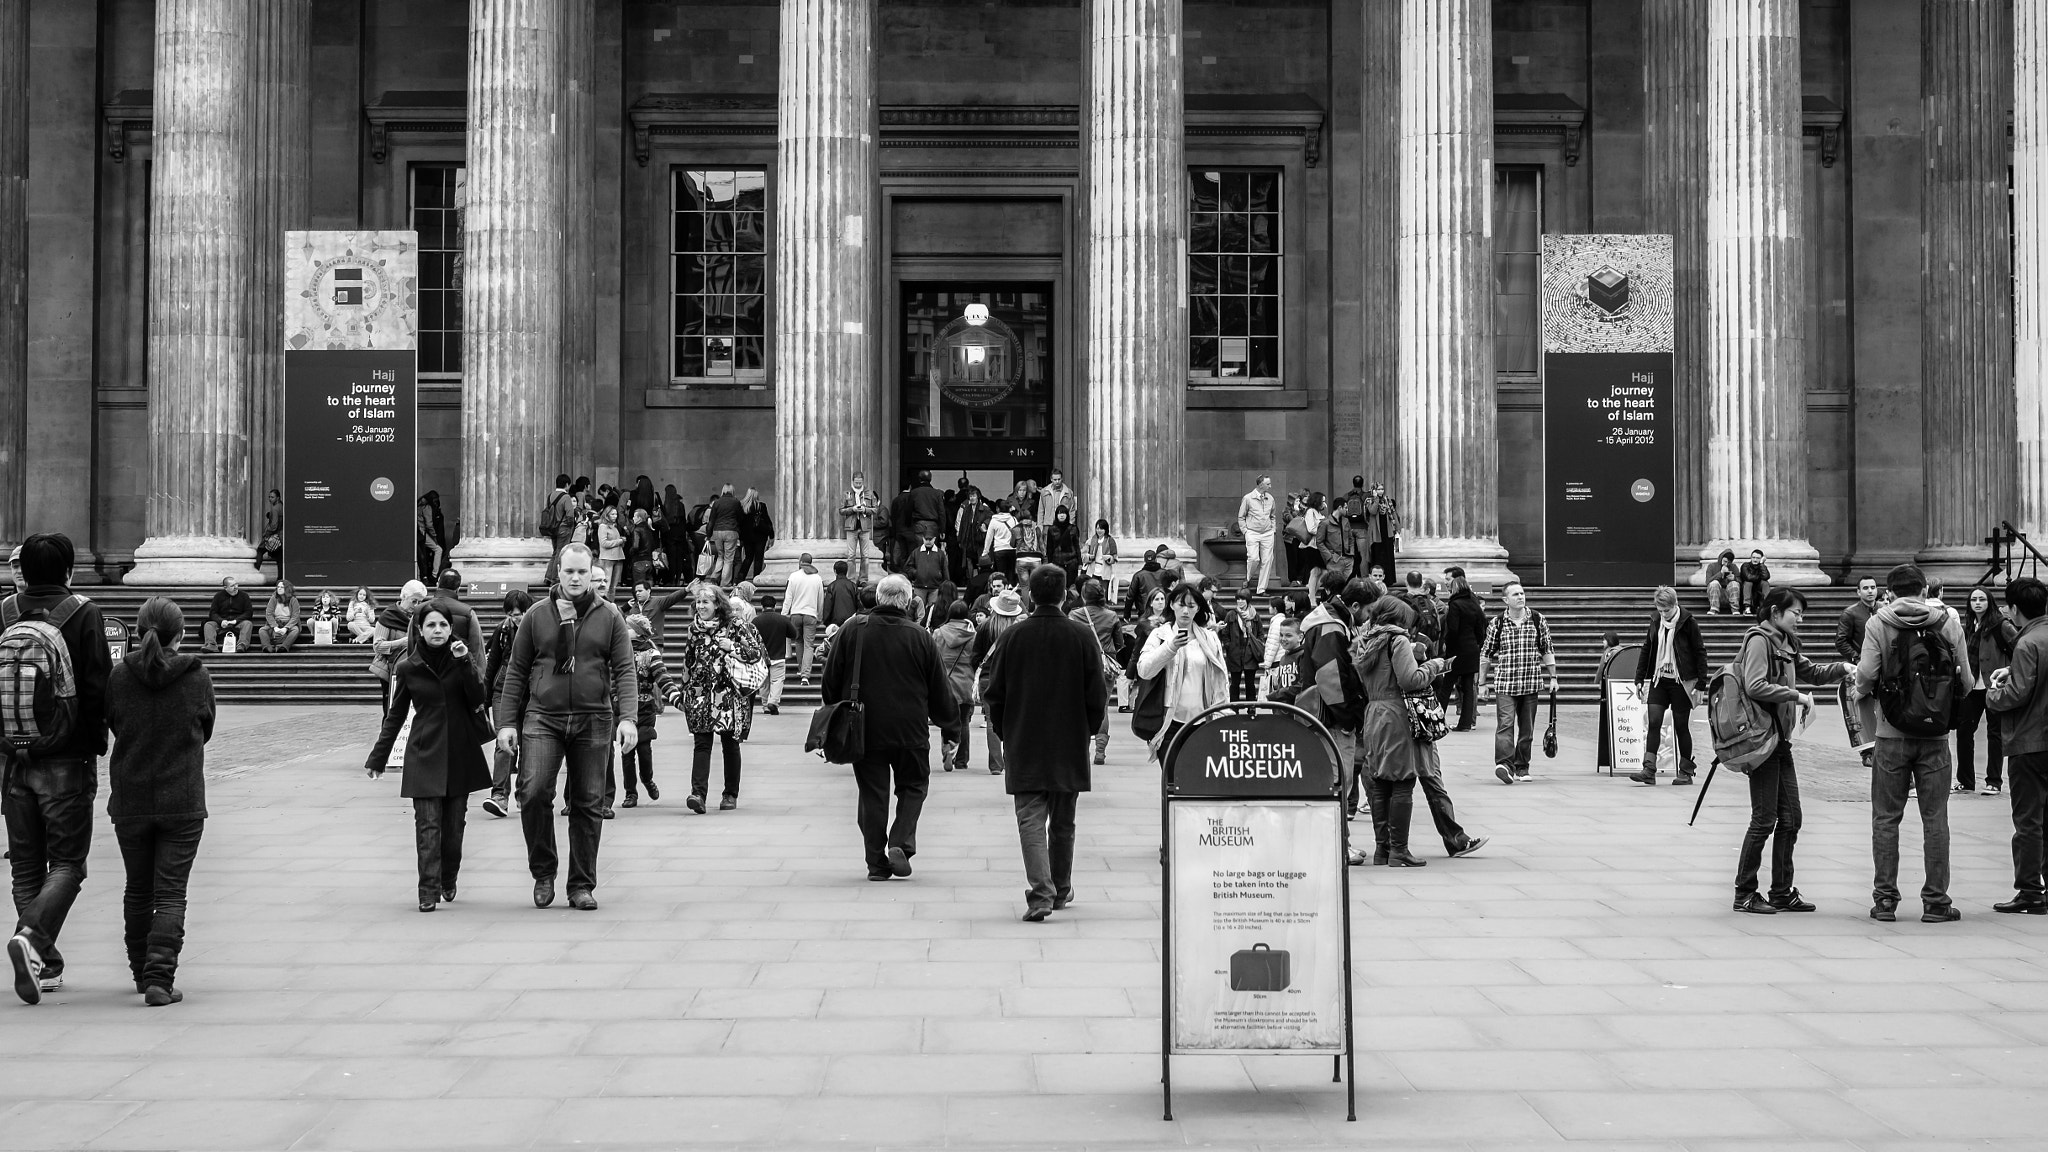 Photograph The British Museum by Gerry Walden on 500px